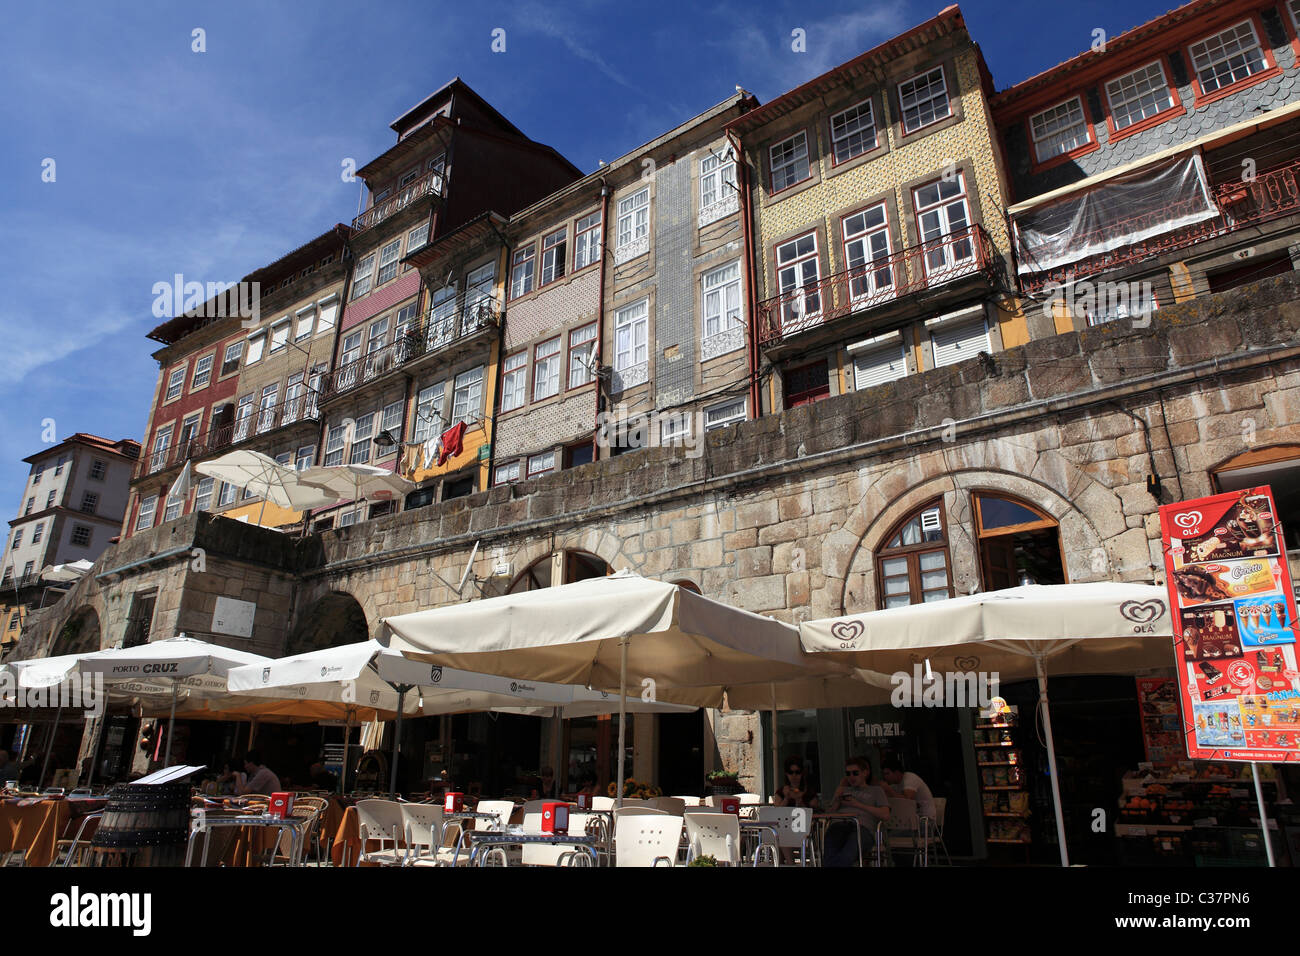 Cafes and restaurants on the riverside Riberia district of Porto, Portugal. - Stock Image